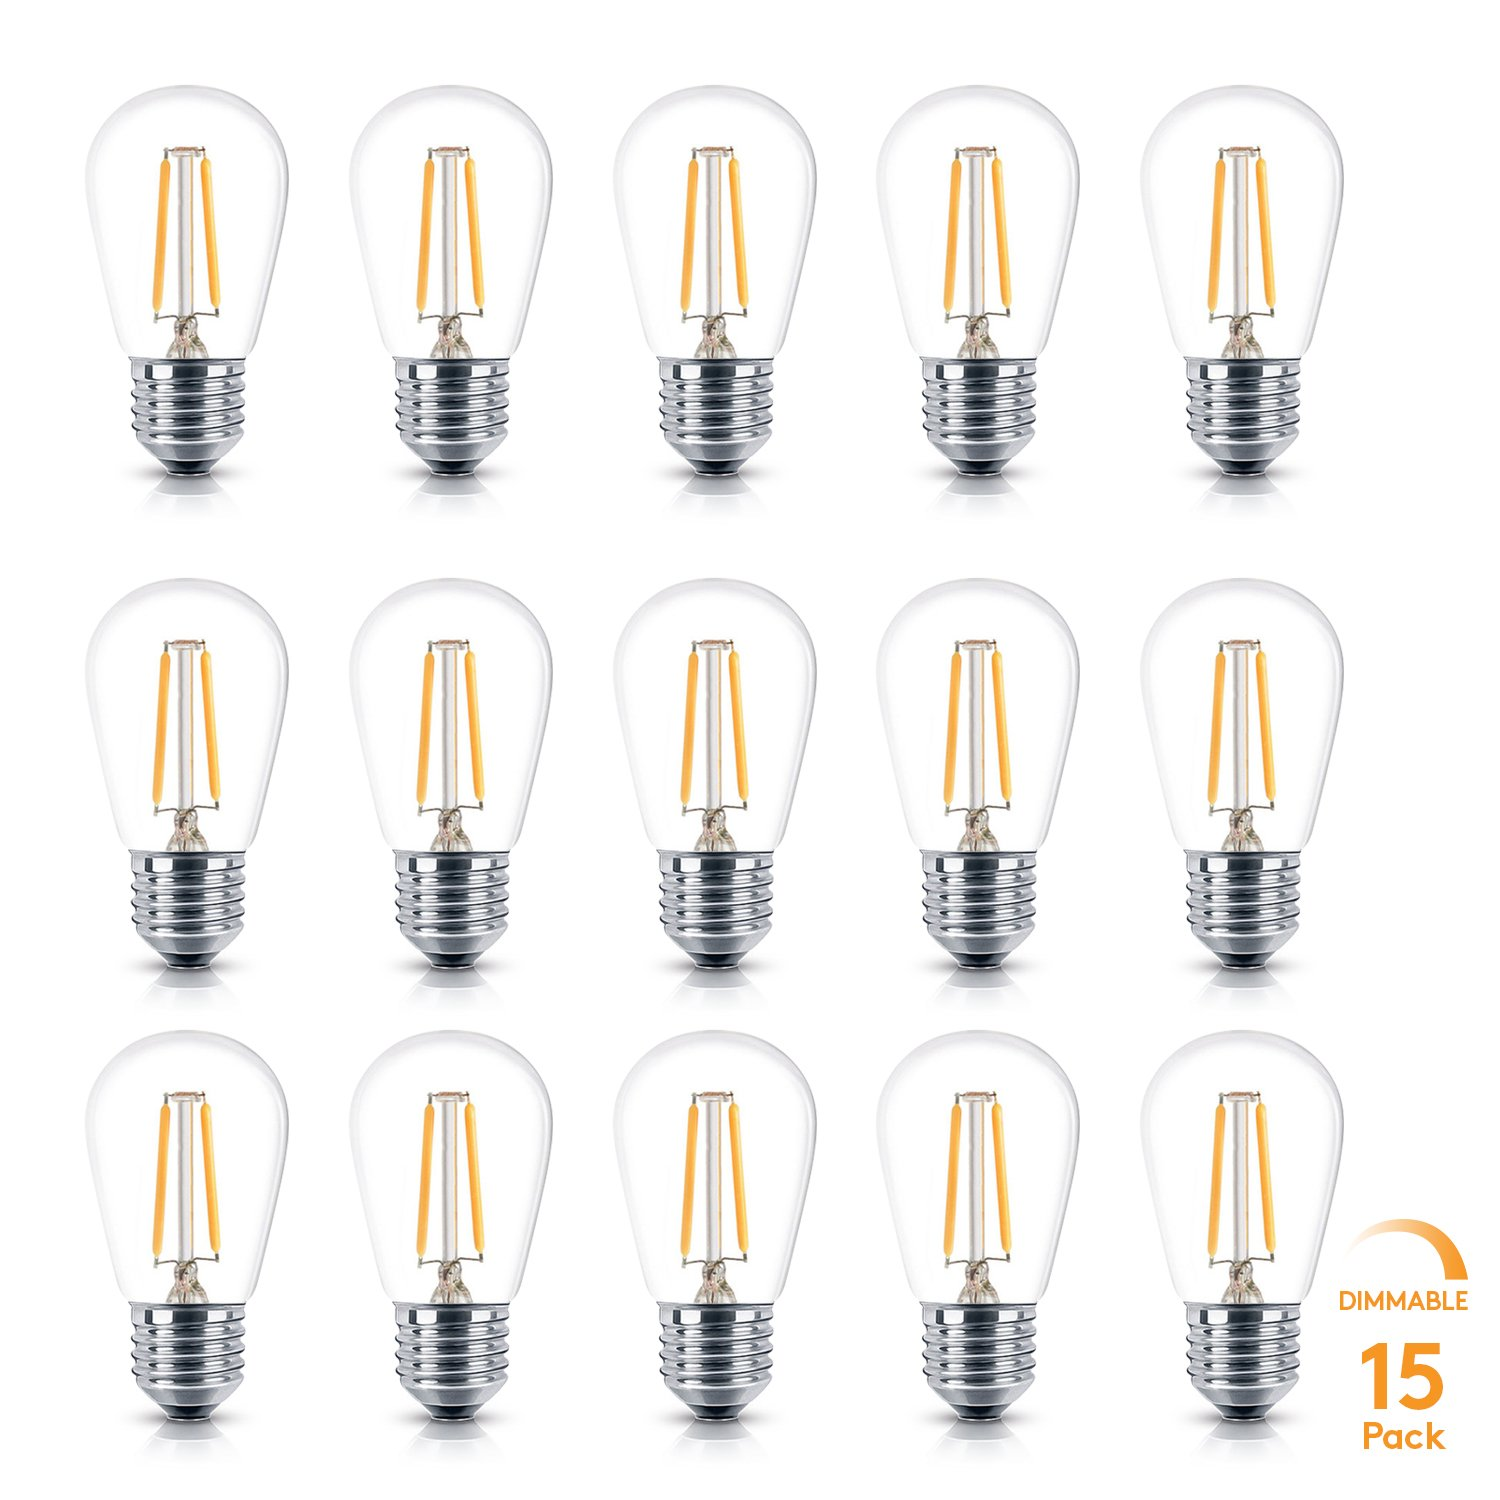 Brightech Ambience PRO LED S14 2 Watt Warm White 2700K Dimmable Bulb - Equal to 20-25W Incandescent Bulbs - Outdoor String Lights - Edison-Inspired Exposed Filaments Design- 15 Pack - E26 Base